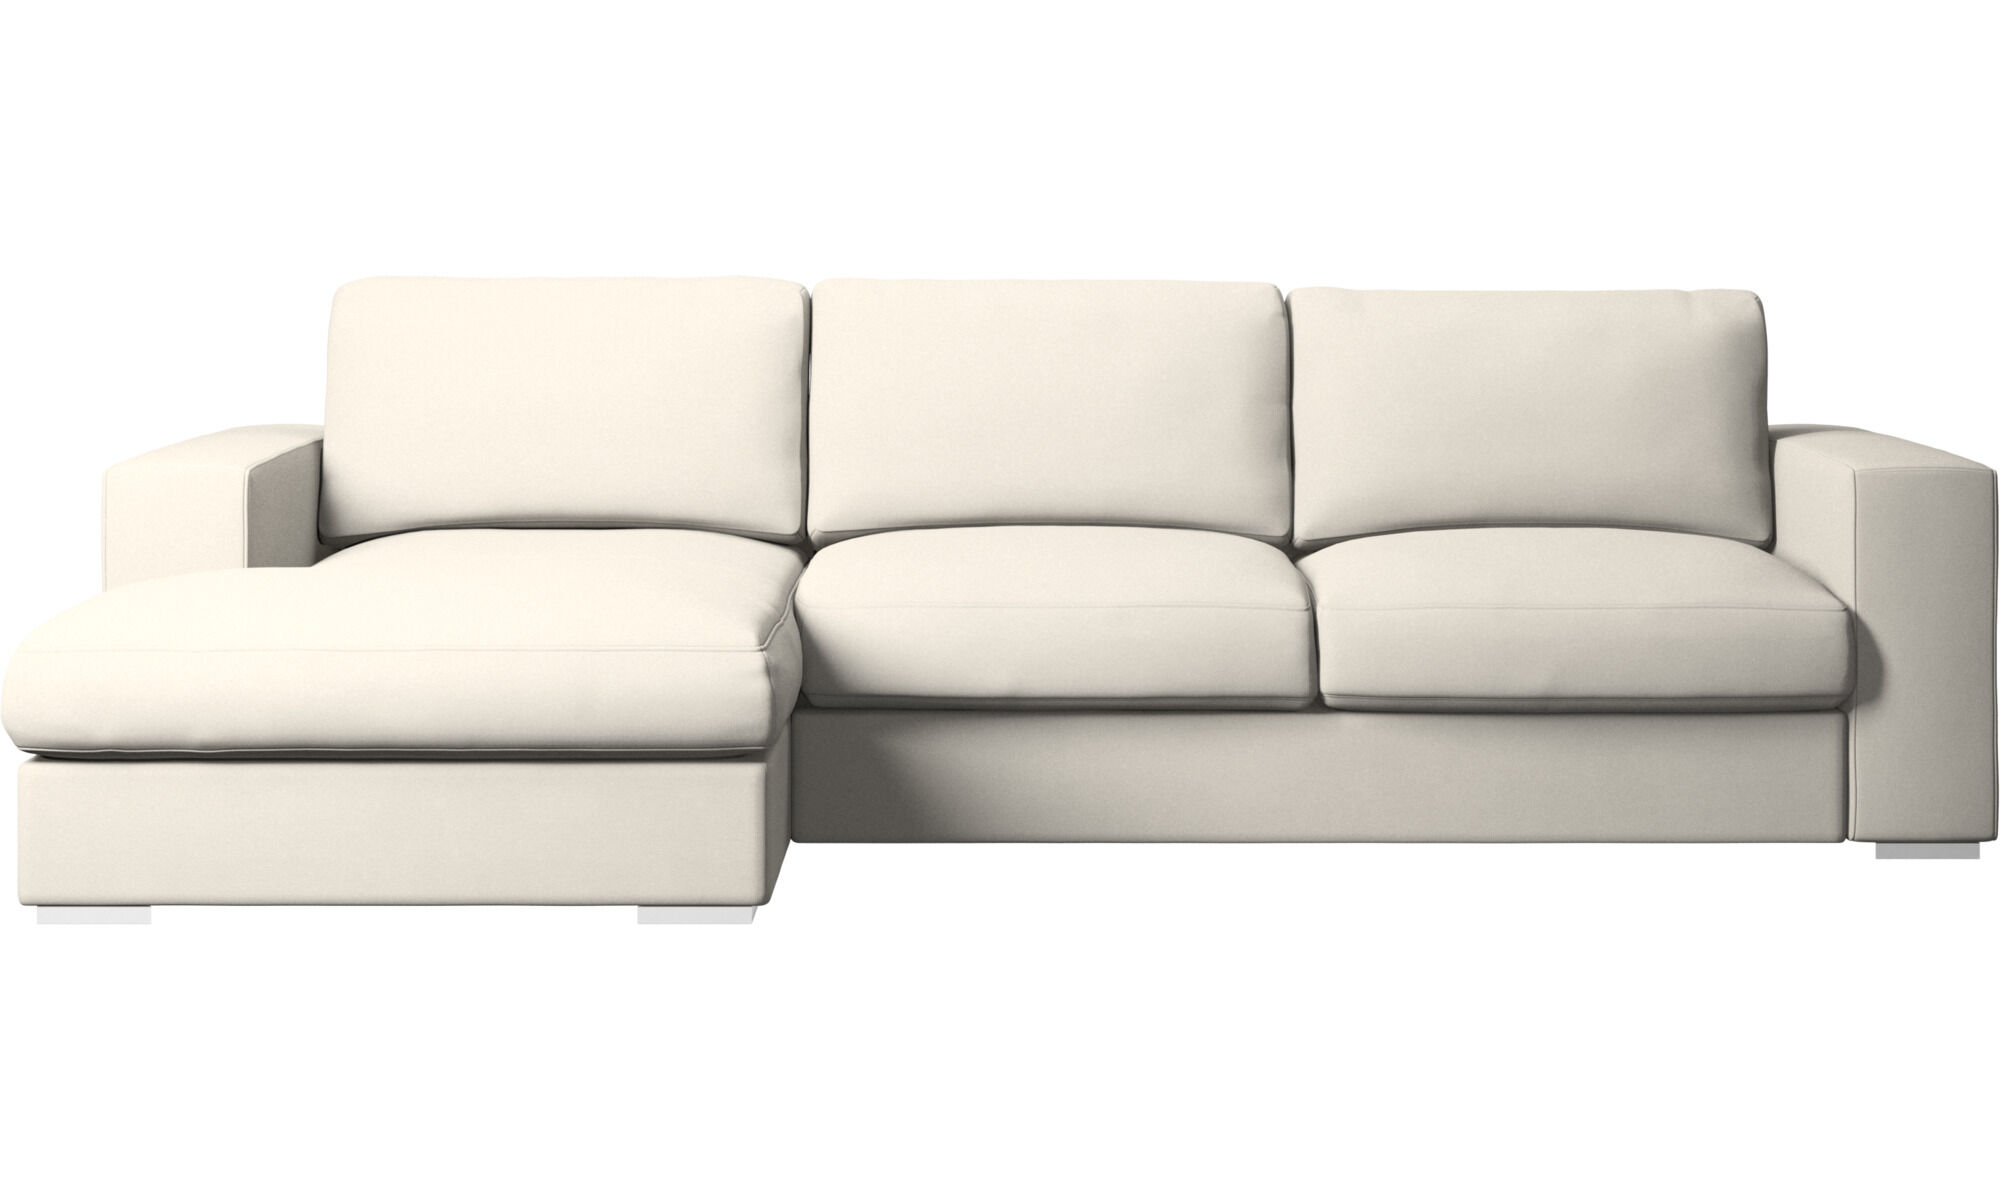 Chaise lounge sofas - Cenova sofa with resting unit - White - Fabric ...  sc 1 st  BoConcept : boconcept chaise - Sectionals, Sofas & Couches